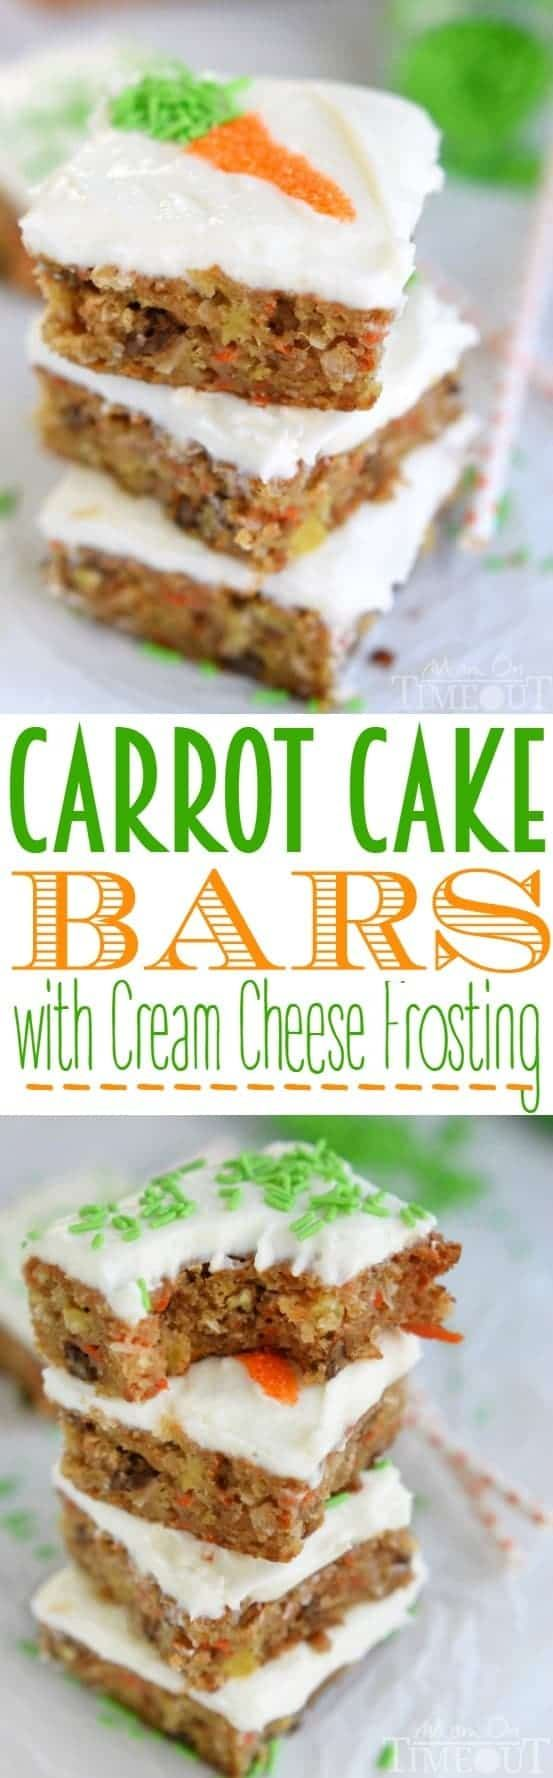 The incredible taste of your favorite carrot cake but in bar form! These Carrot Cake Bars with Cream Cheese Frosting are as easy as 1-2-3 and disappear just that quickly! | MomOnTimeout.com